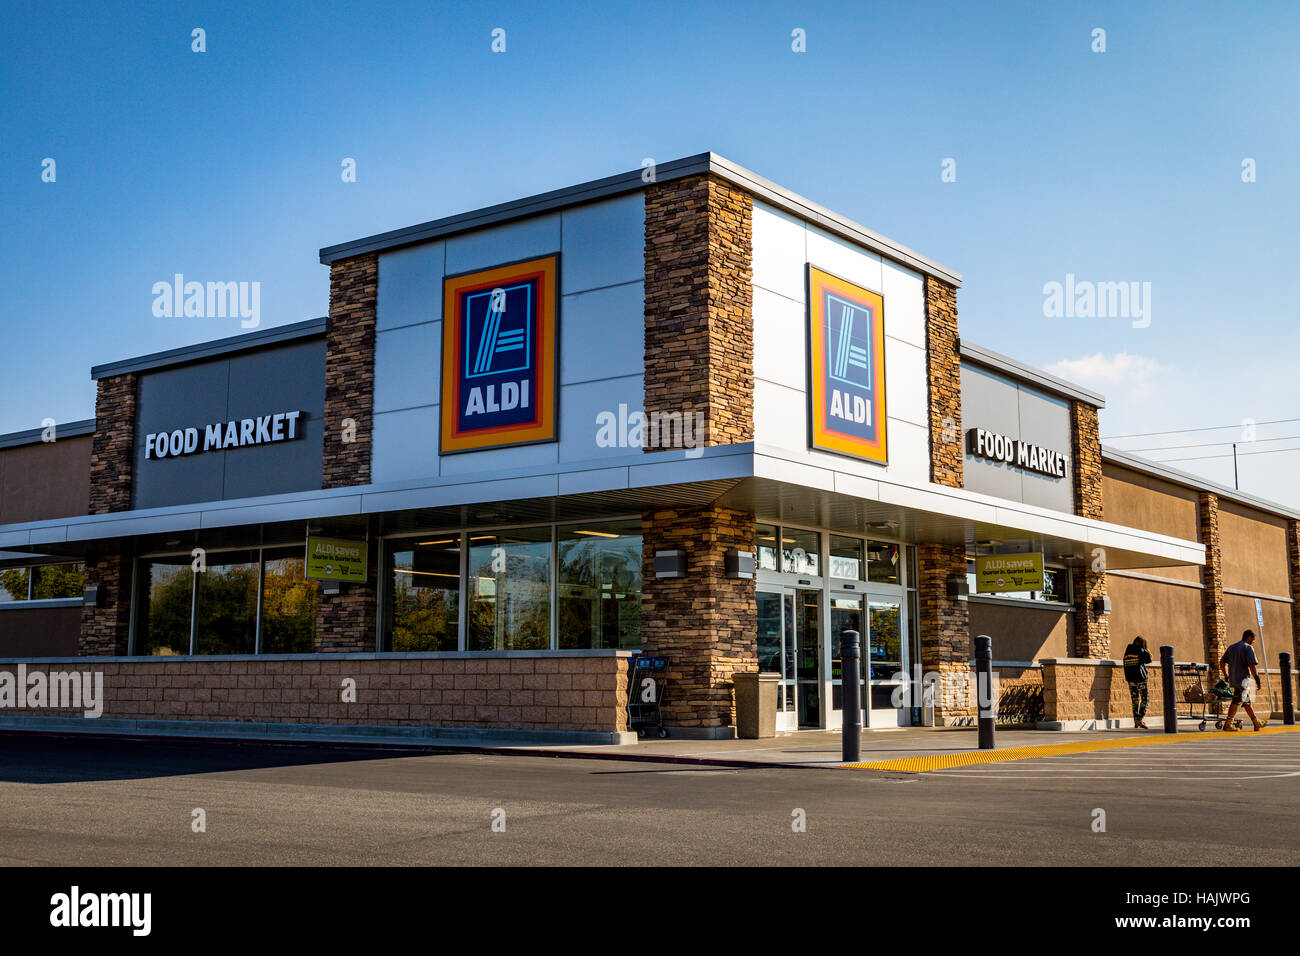 An Aldi Store In Bakersfield California Usa Stock Photo. Graphic Design Professions Cost New Furnace. Assisted Living Temple Tx Model Based Design. Troubleshoot Issues With Microsoft Sharepoint Foundation. Problems With Bladder Control. Cable Providers In Los Angeles. Navarre Youth Sports Association. Ohio Medical Transportation Board. Applied Behavior Analysis Certificate Online